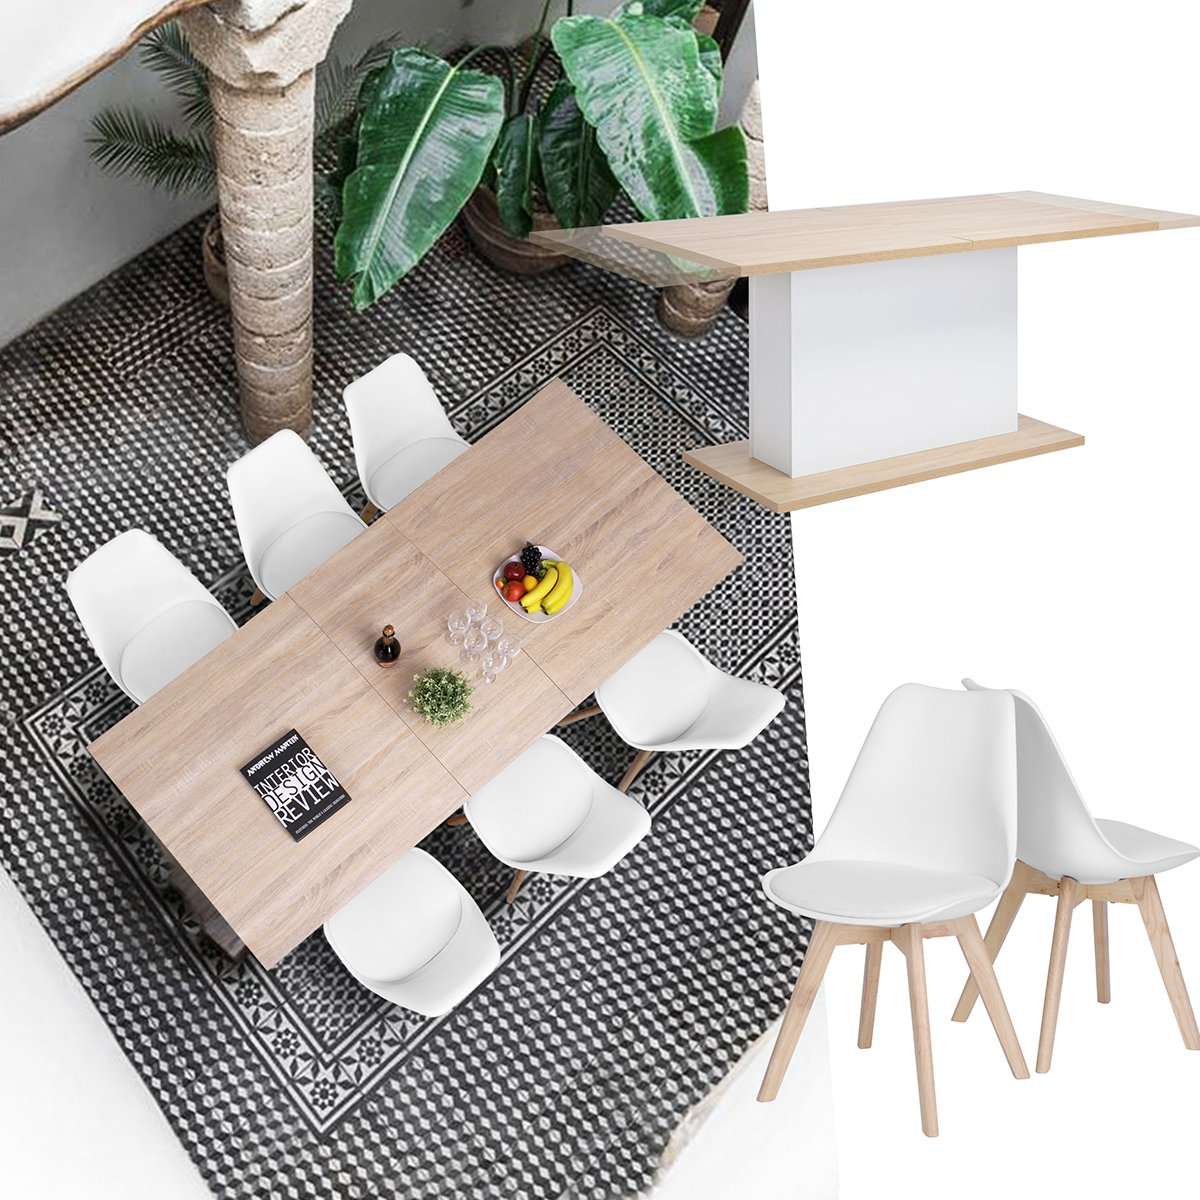 Extendable Rectangular Dining Table, Mltifunction Space Saving Wood Table (Extendable Beech Table) by HOMY CASA (Image #2)